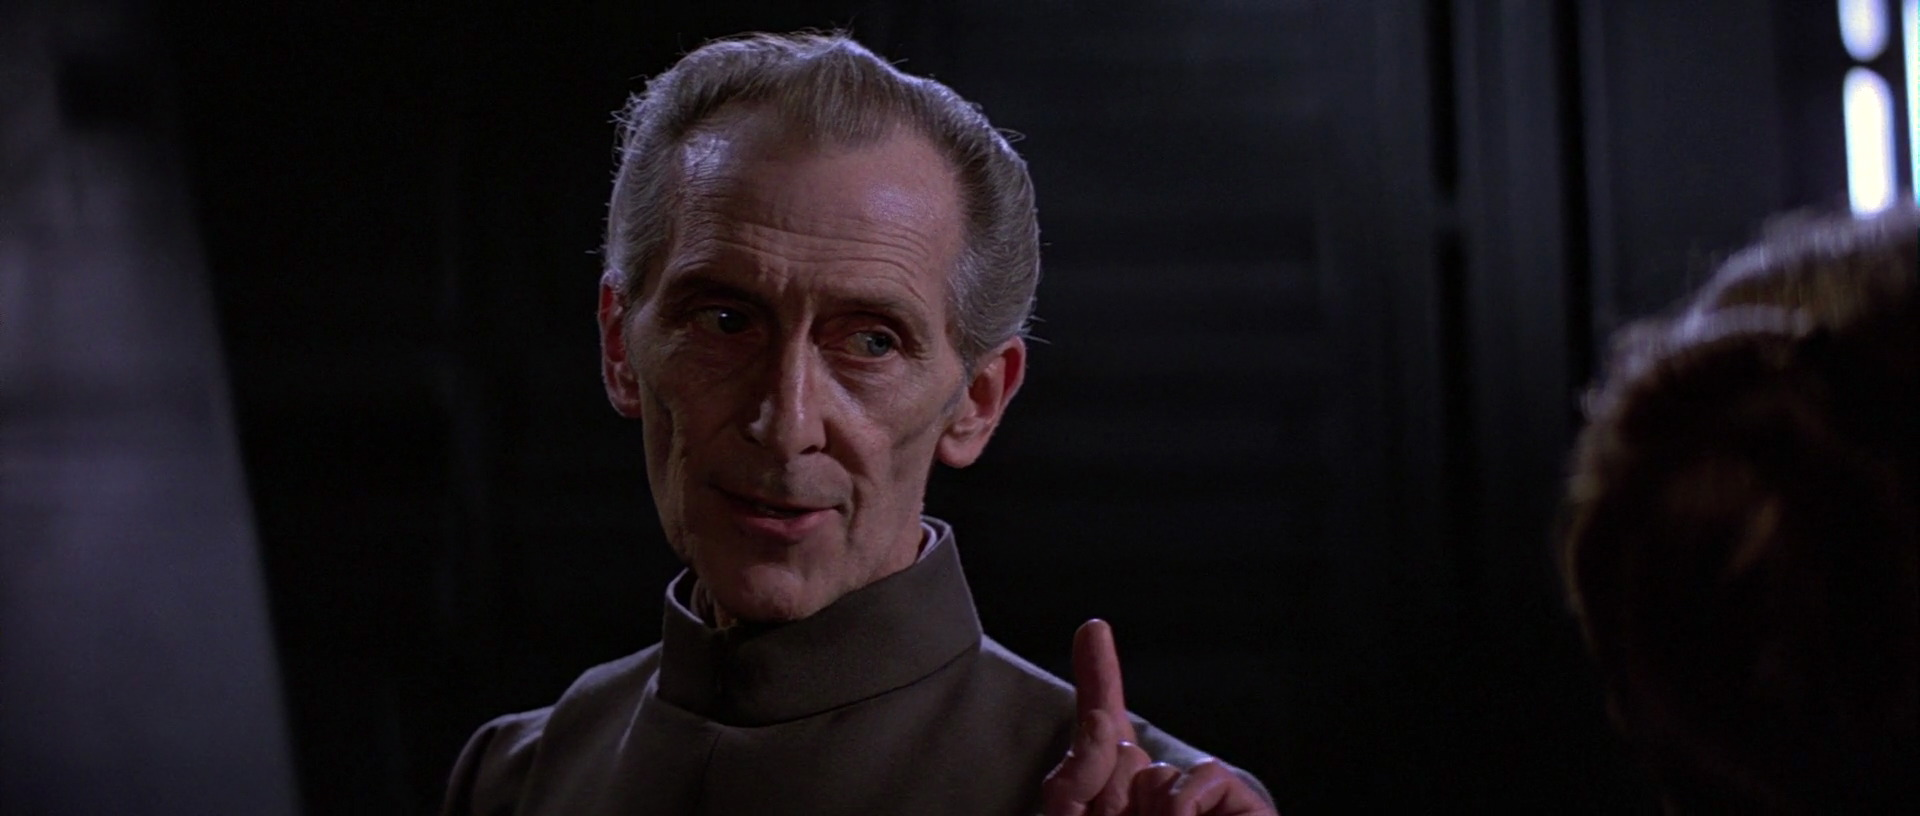 """Fear will keep the outer systems in line"" – Grand Moff Tarkin"